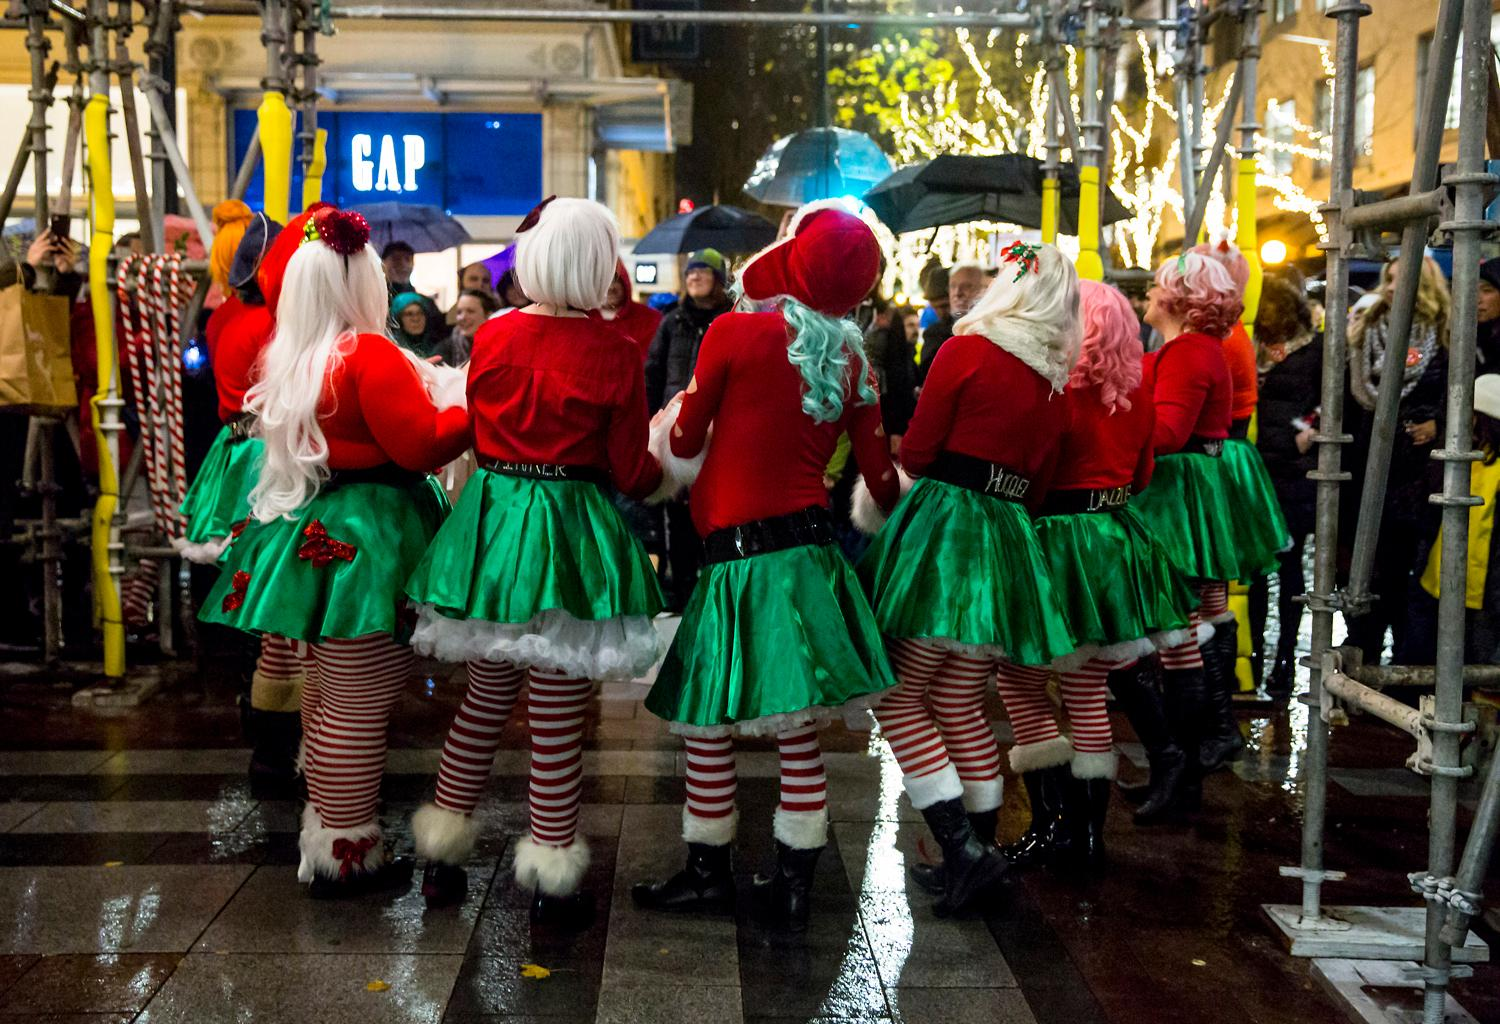 Thousands of people attended the annual Great Figgy Pudding Caroling Competition in downtown Seattle and Westlake Center on Friday night, December 1. The event raises funds for the Pike Market Senior Center and Food Bank which offers free meals, groceries, one-one-one counseling and other services to low-income and homeless neighbors in need. Dozens of caroling teams sing their hearts out on street corners in and around Westlake Center, and the top teams then compete in a sing-off on the Figgy Main Stage. (Sy Bean / Seattle Refined)